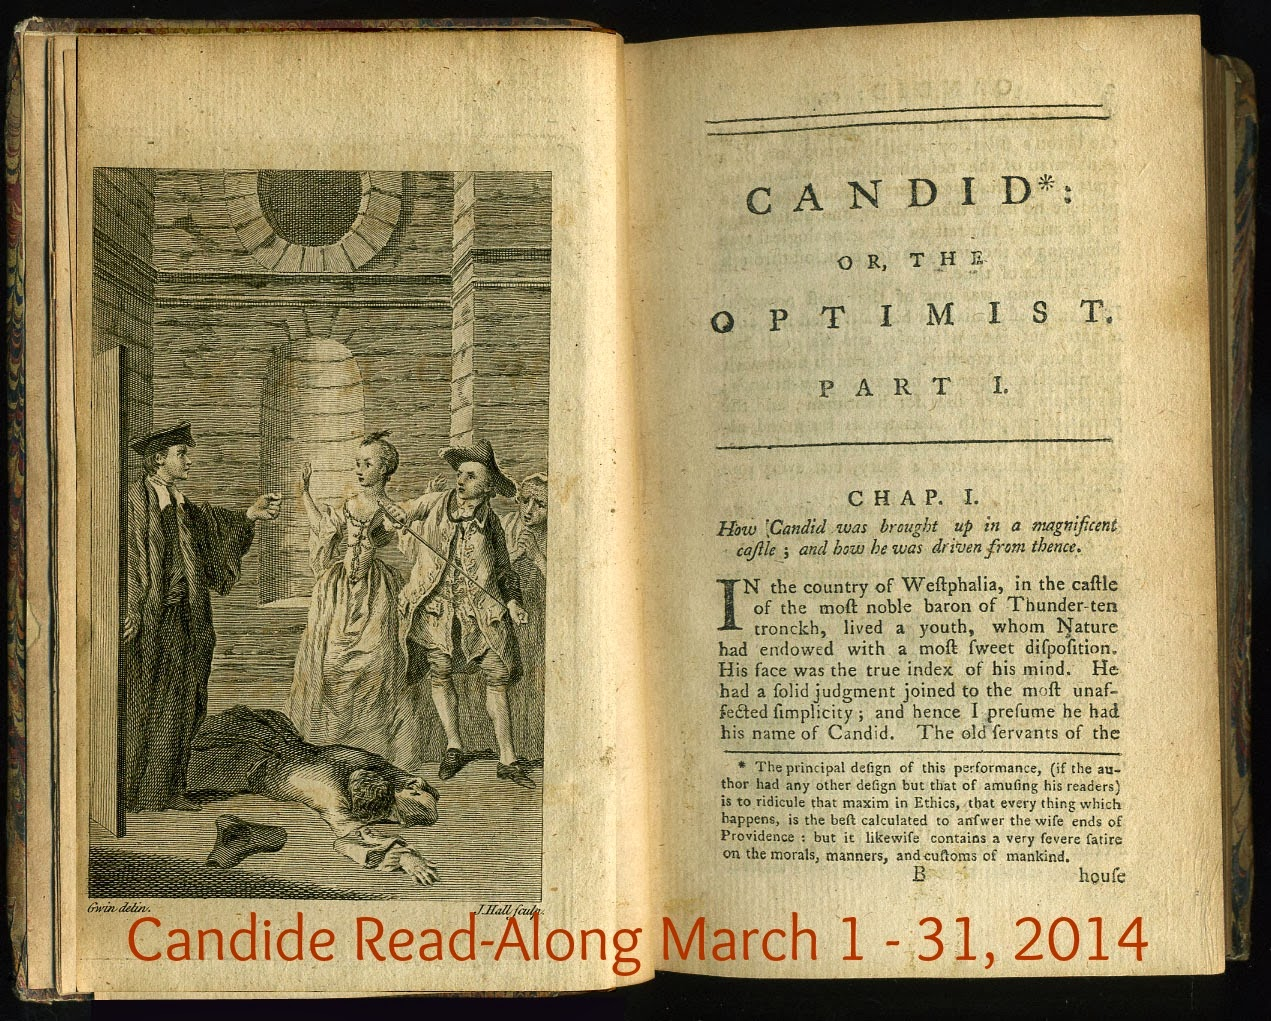 Candide Read-Along Intro & Chapters 1 - 8